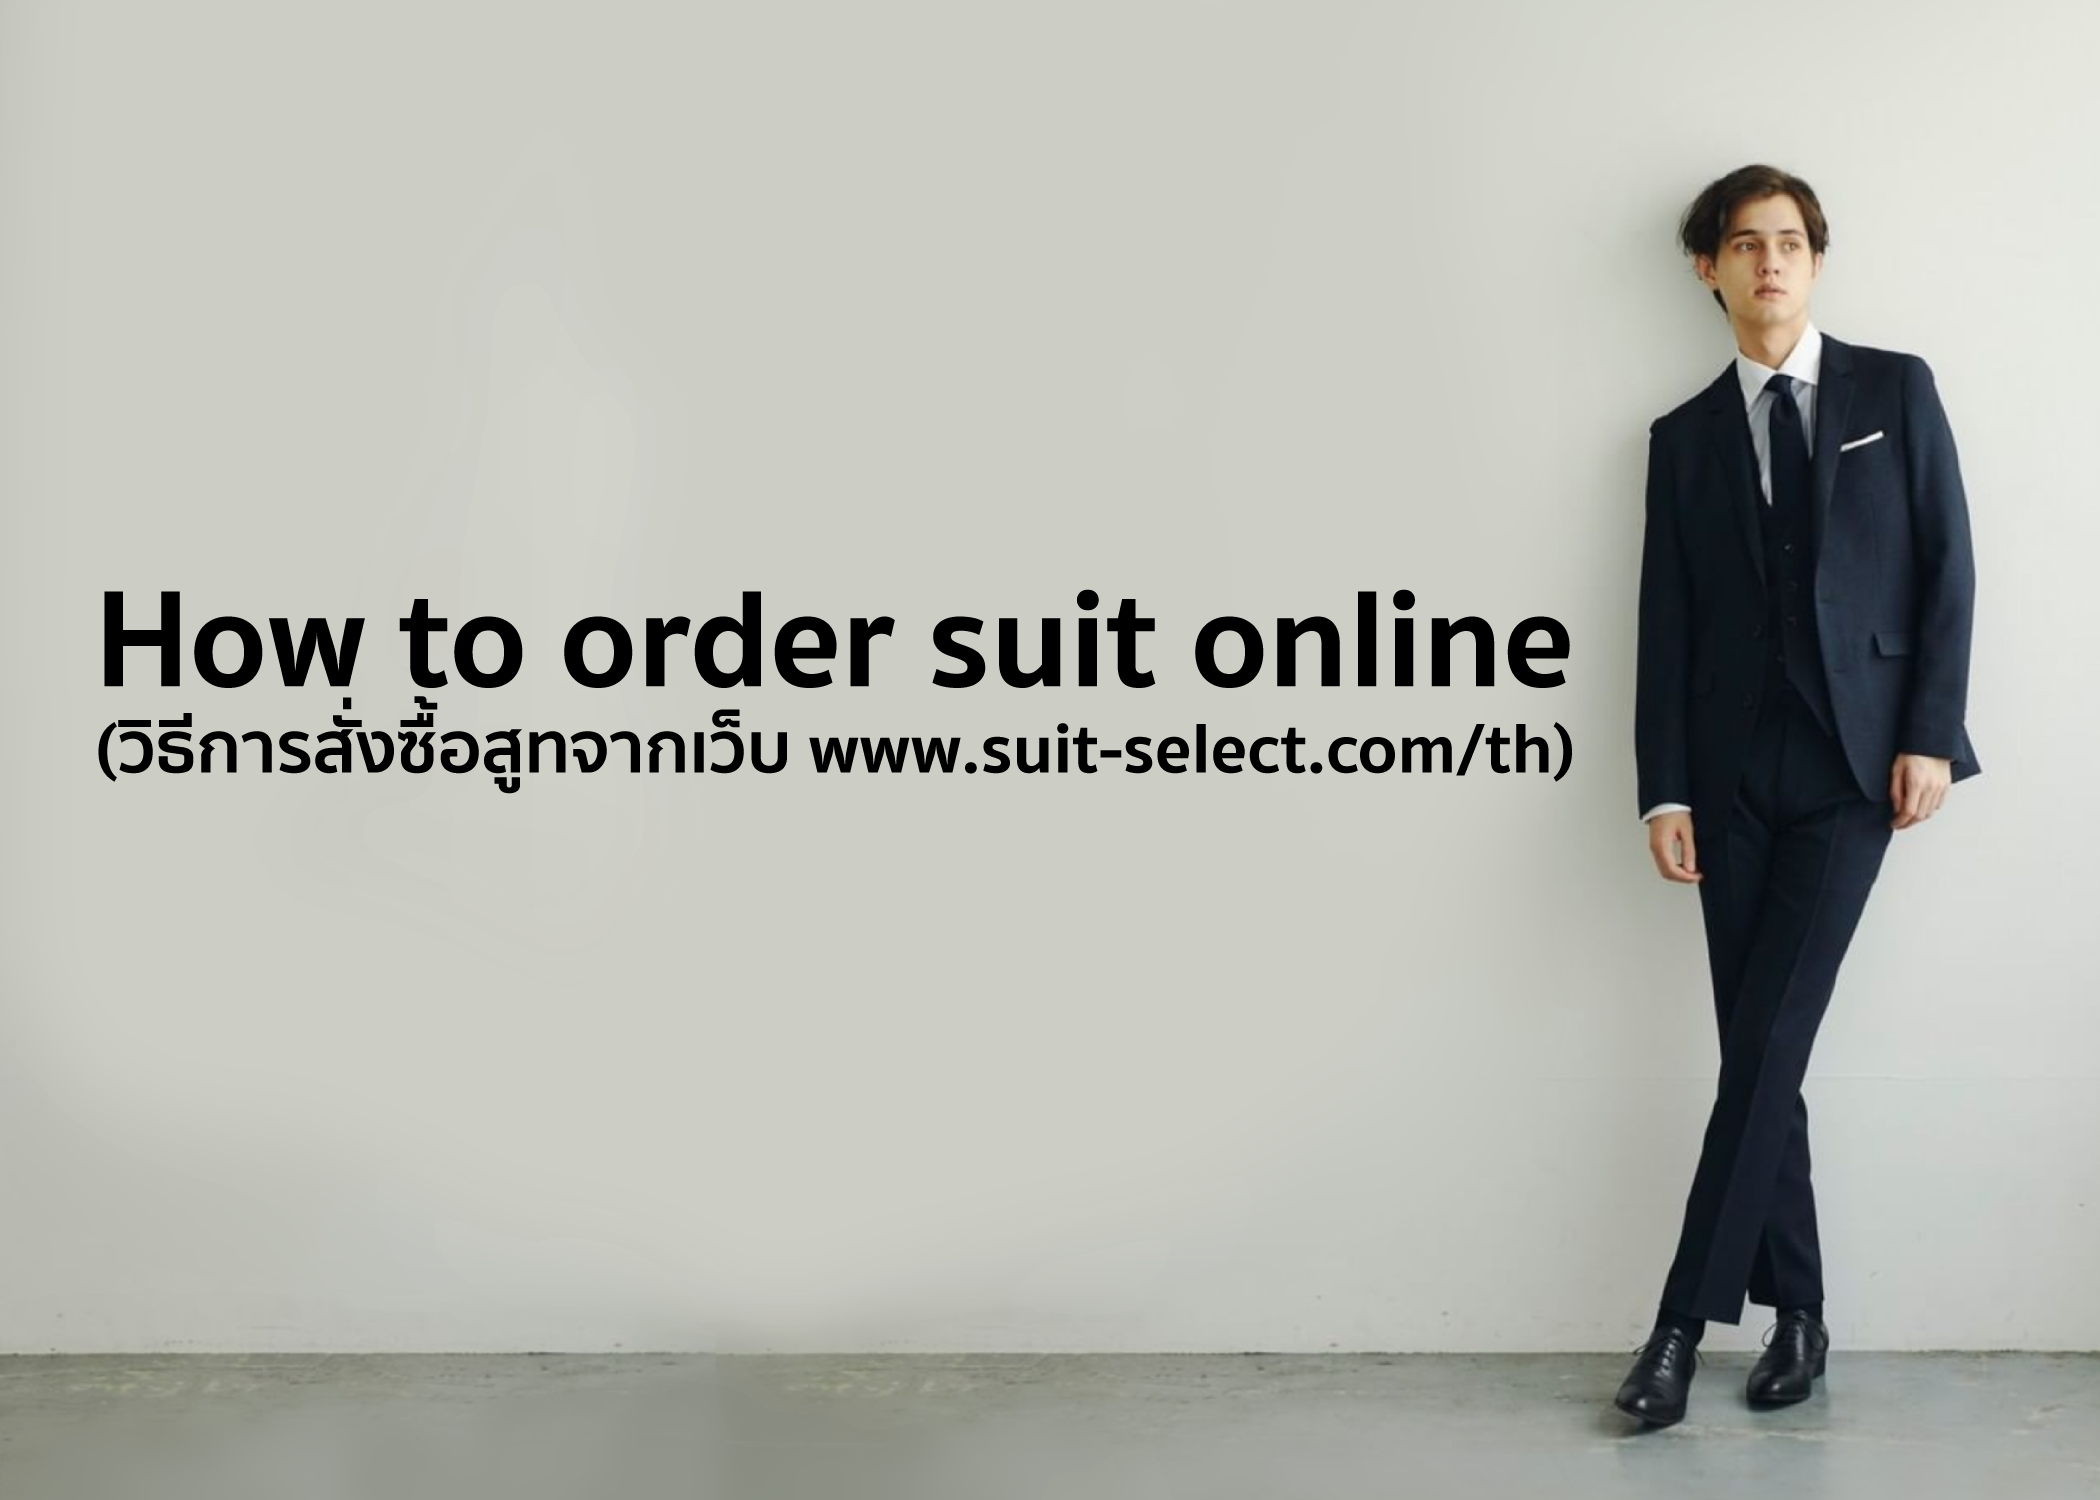 How to order suit online (วิธีการสั่งซื้อสูทจากเว็บ www.suit-select.com/th)